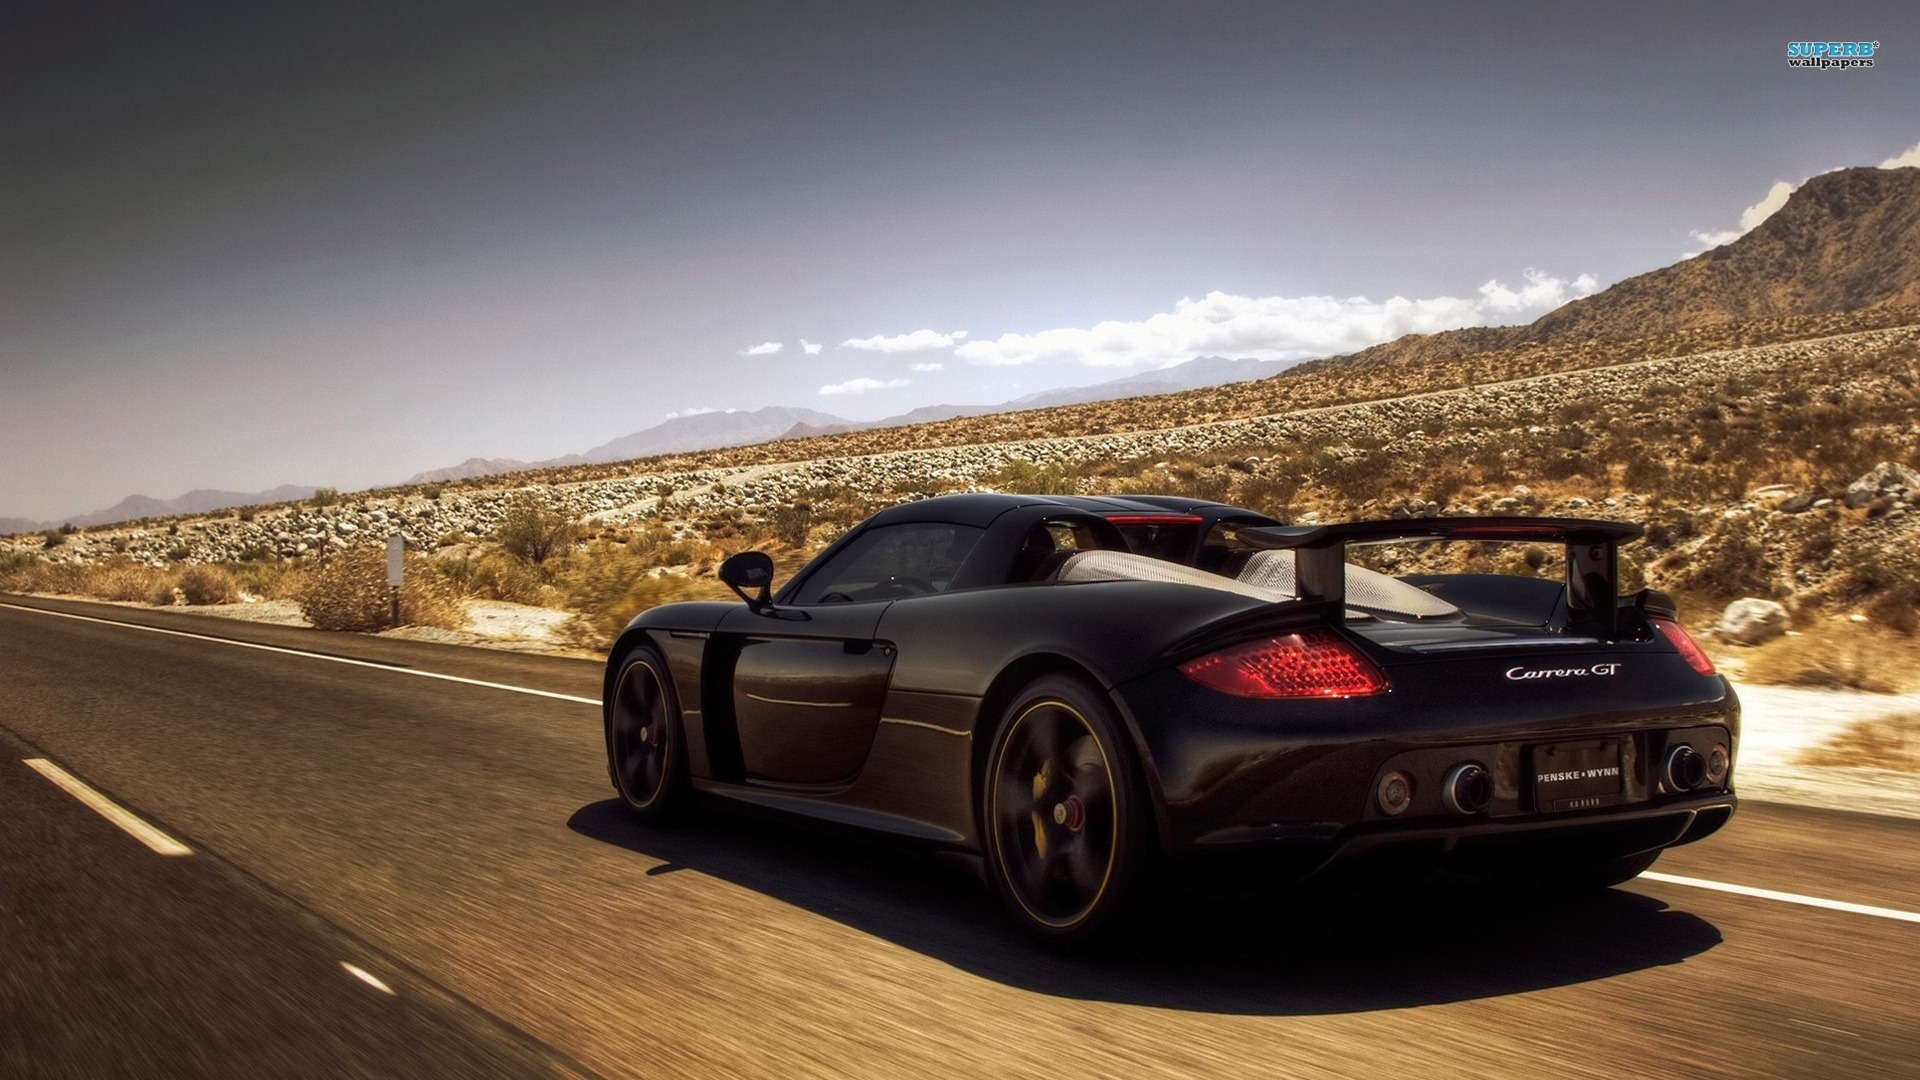 cool porsche wallpaper